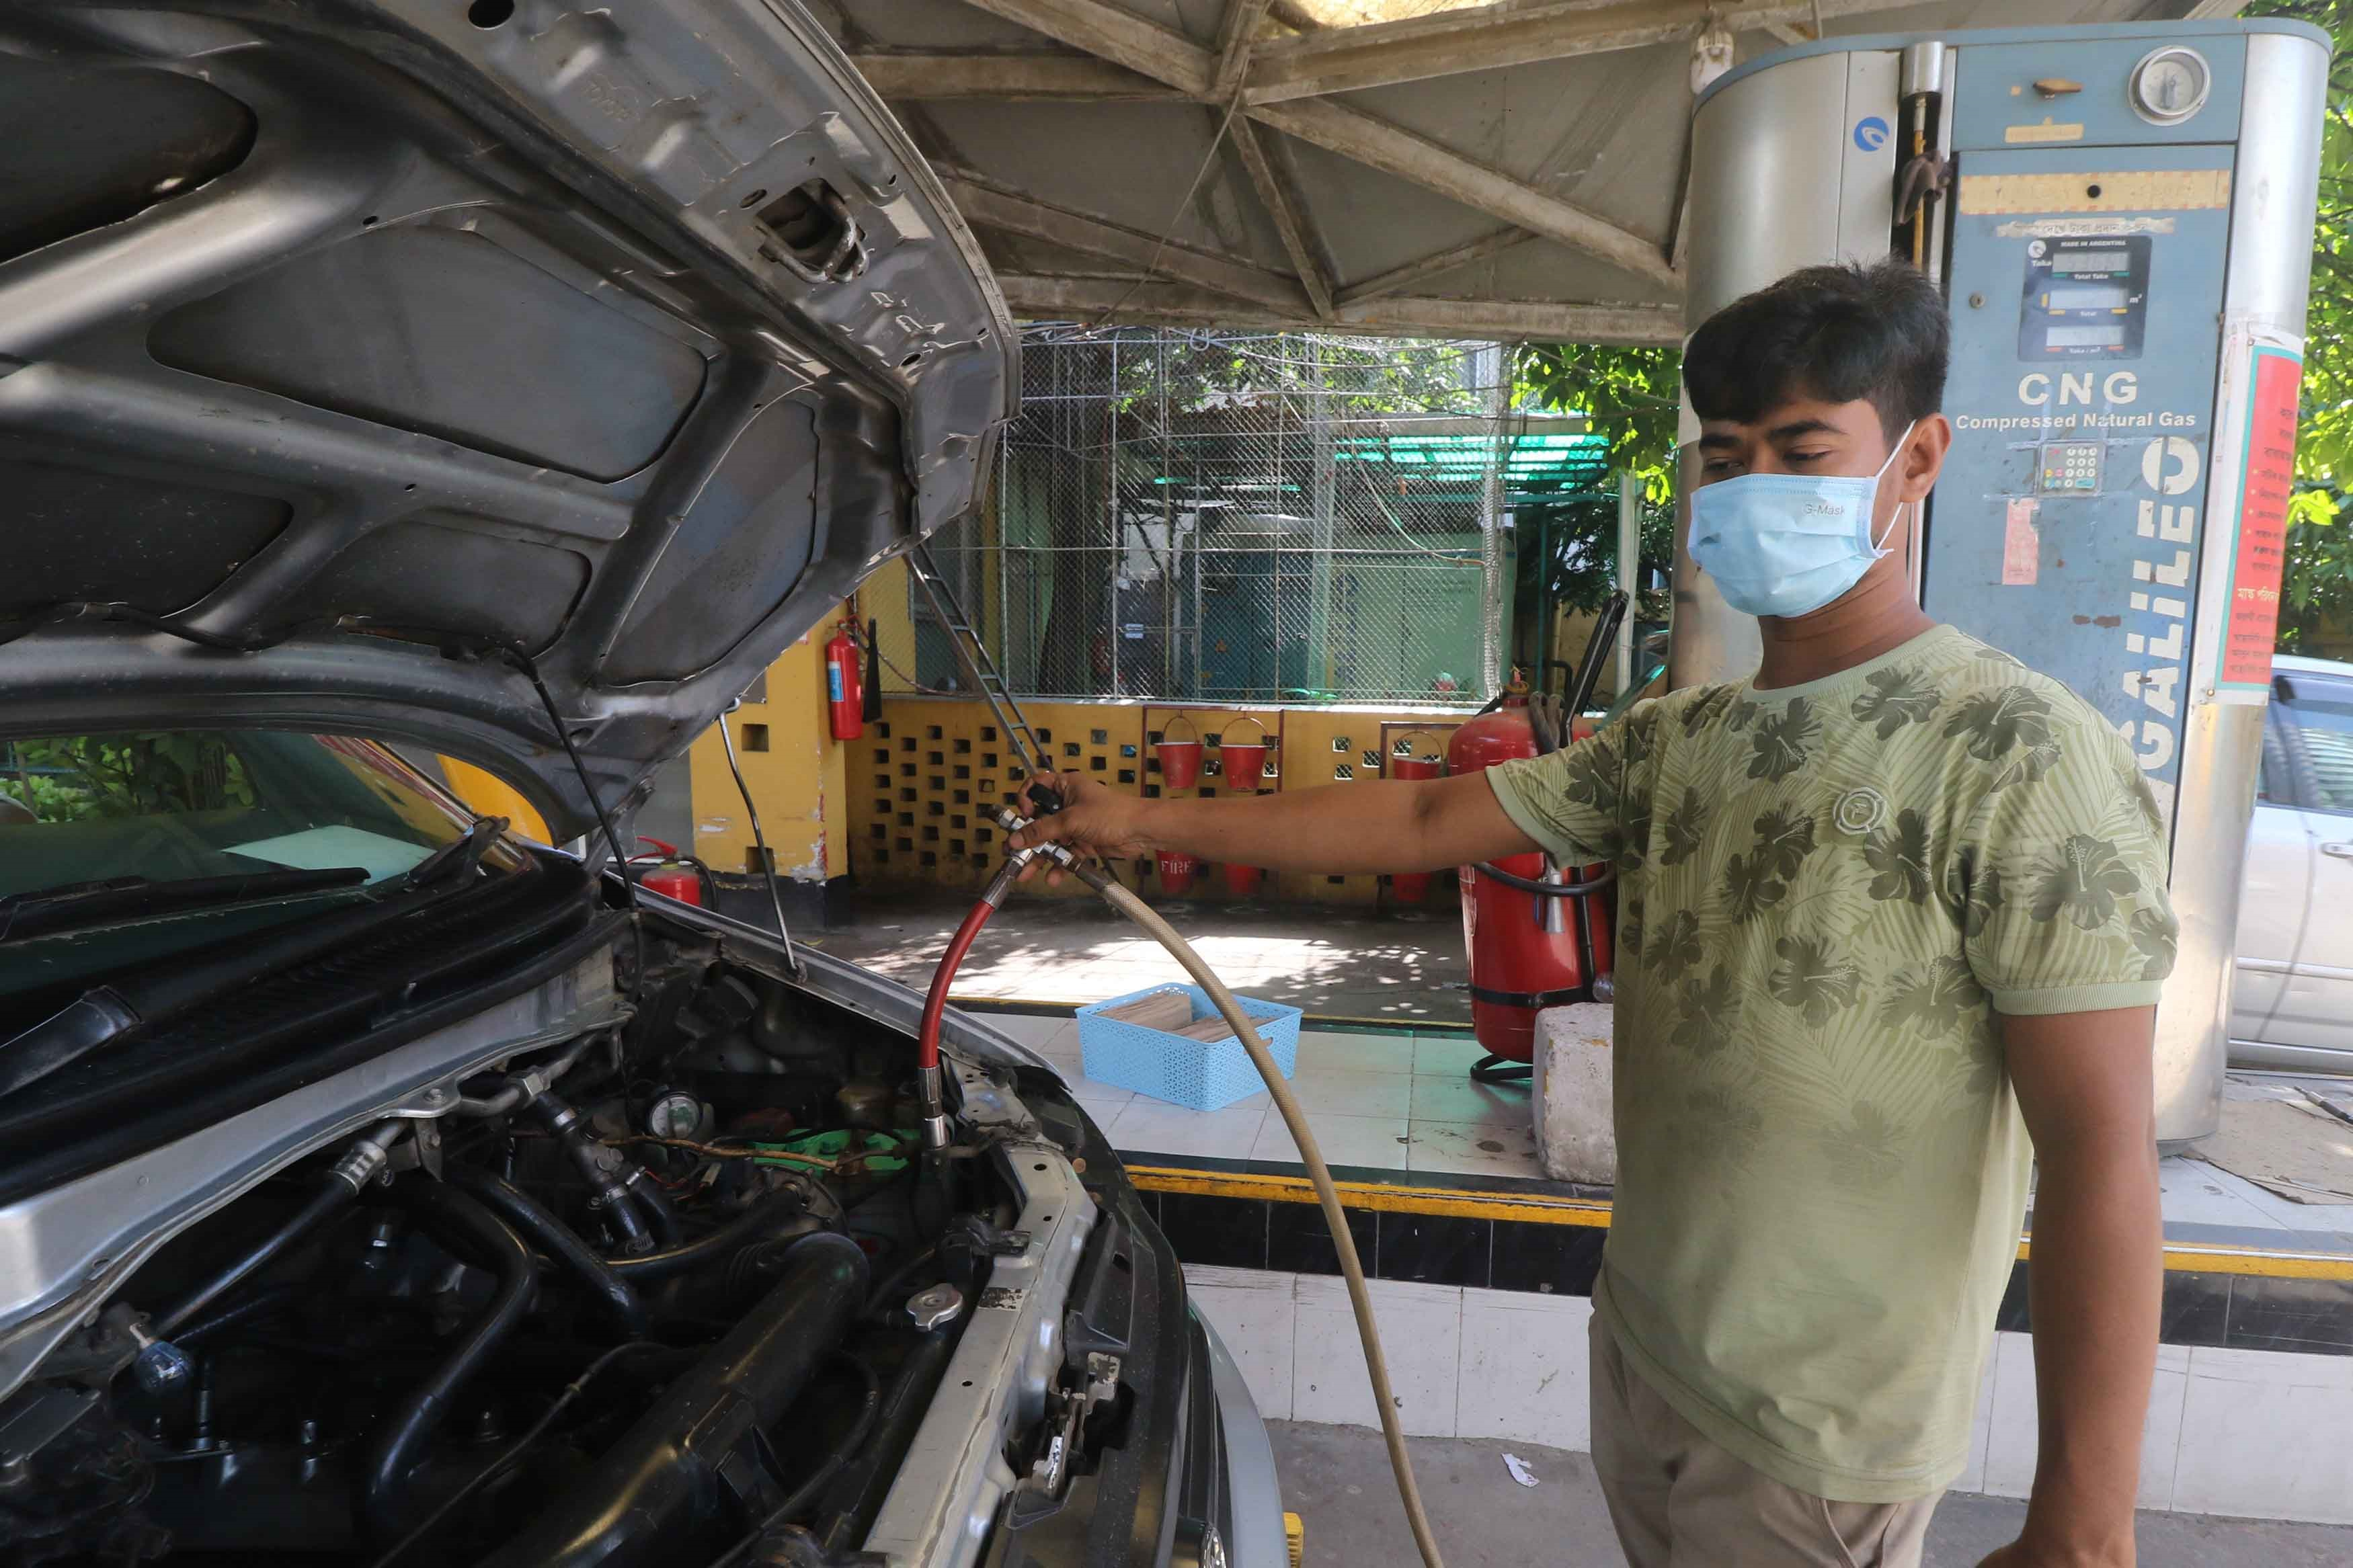 CNG stations to remain closed in electricity peak hours